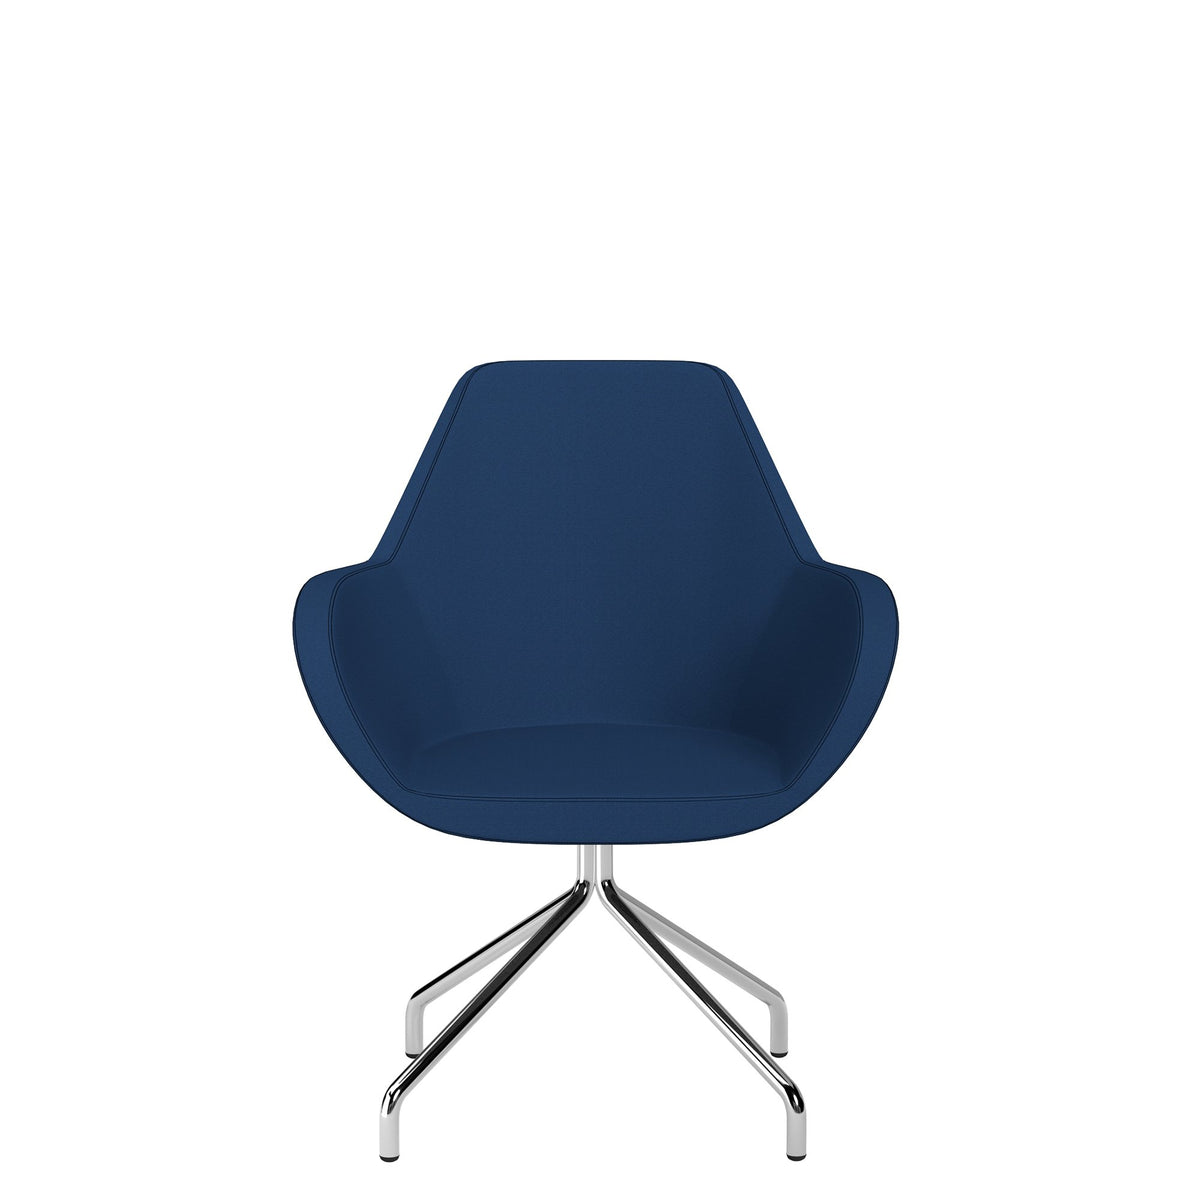 Spacestor Office Fan Chair with Swivel Base Dark Blue